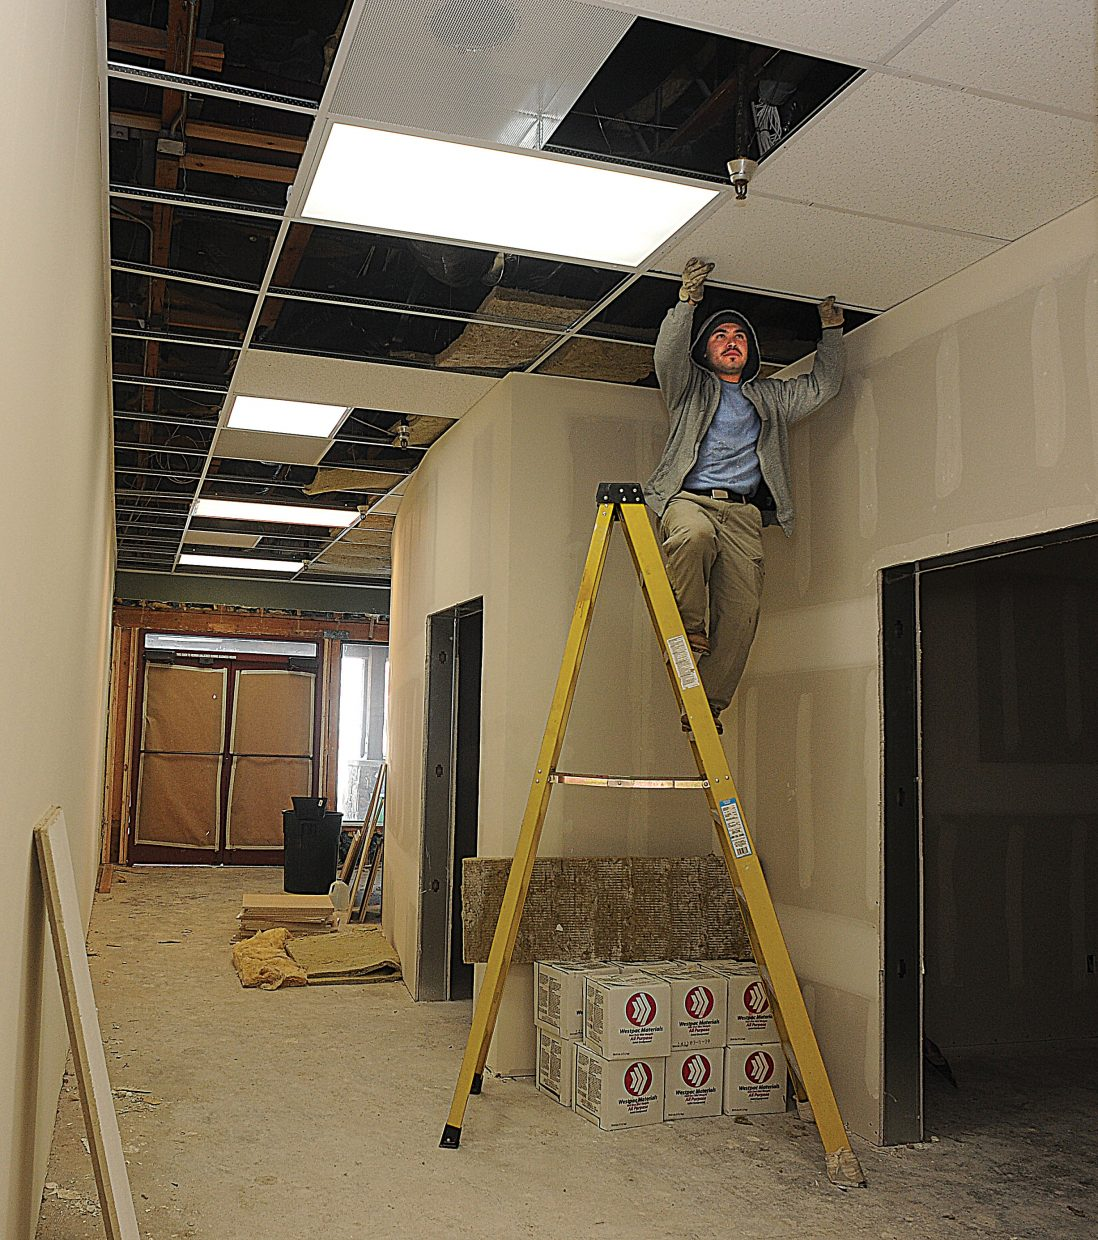 Construction worker Gerardo Lopez works on a remodeling project in a space where Sundance Studio will be expanding its operations.